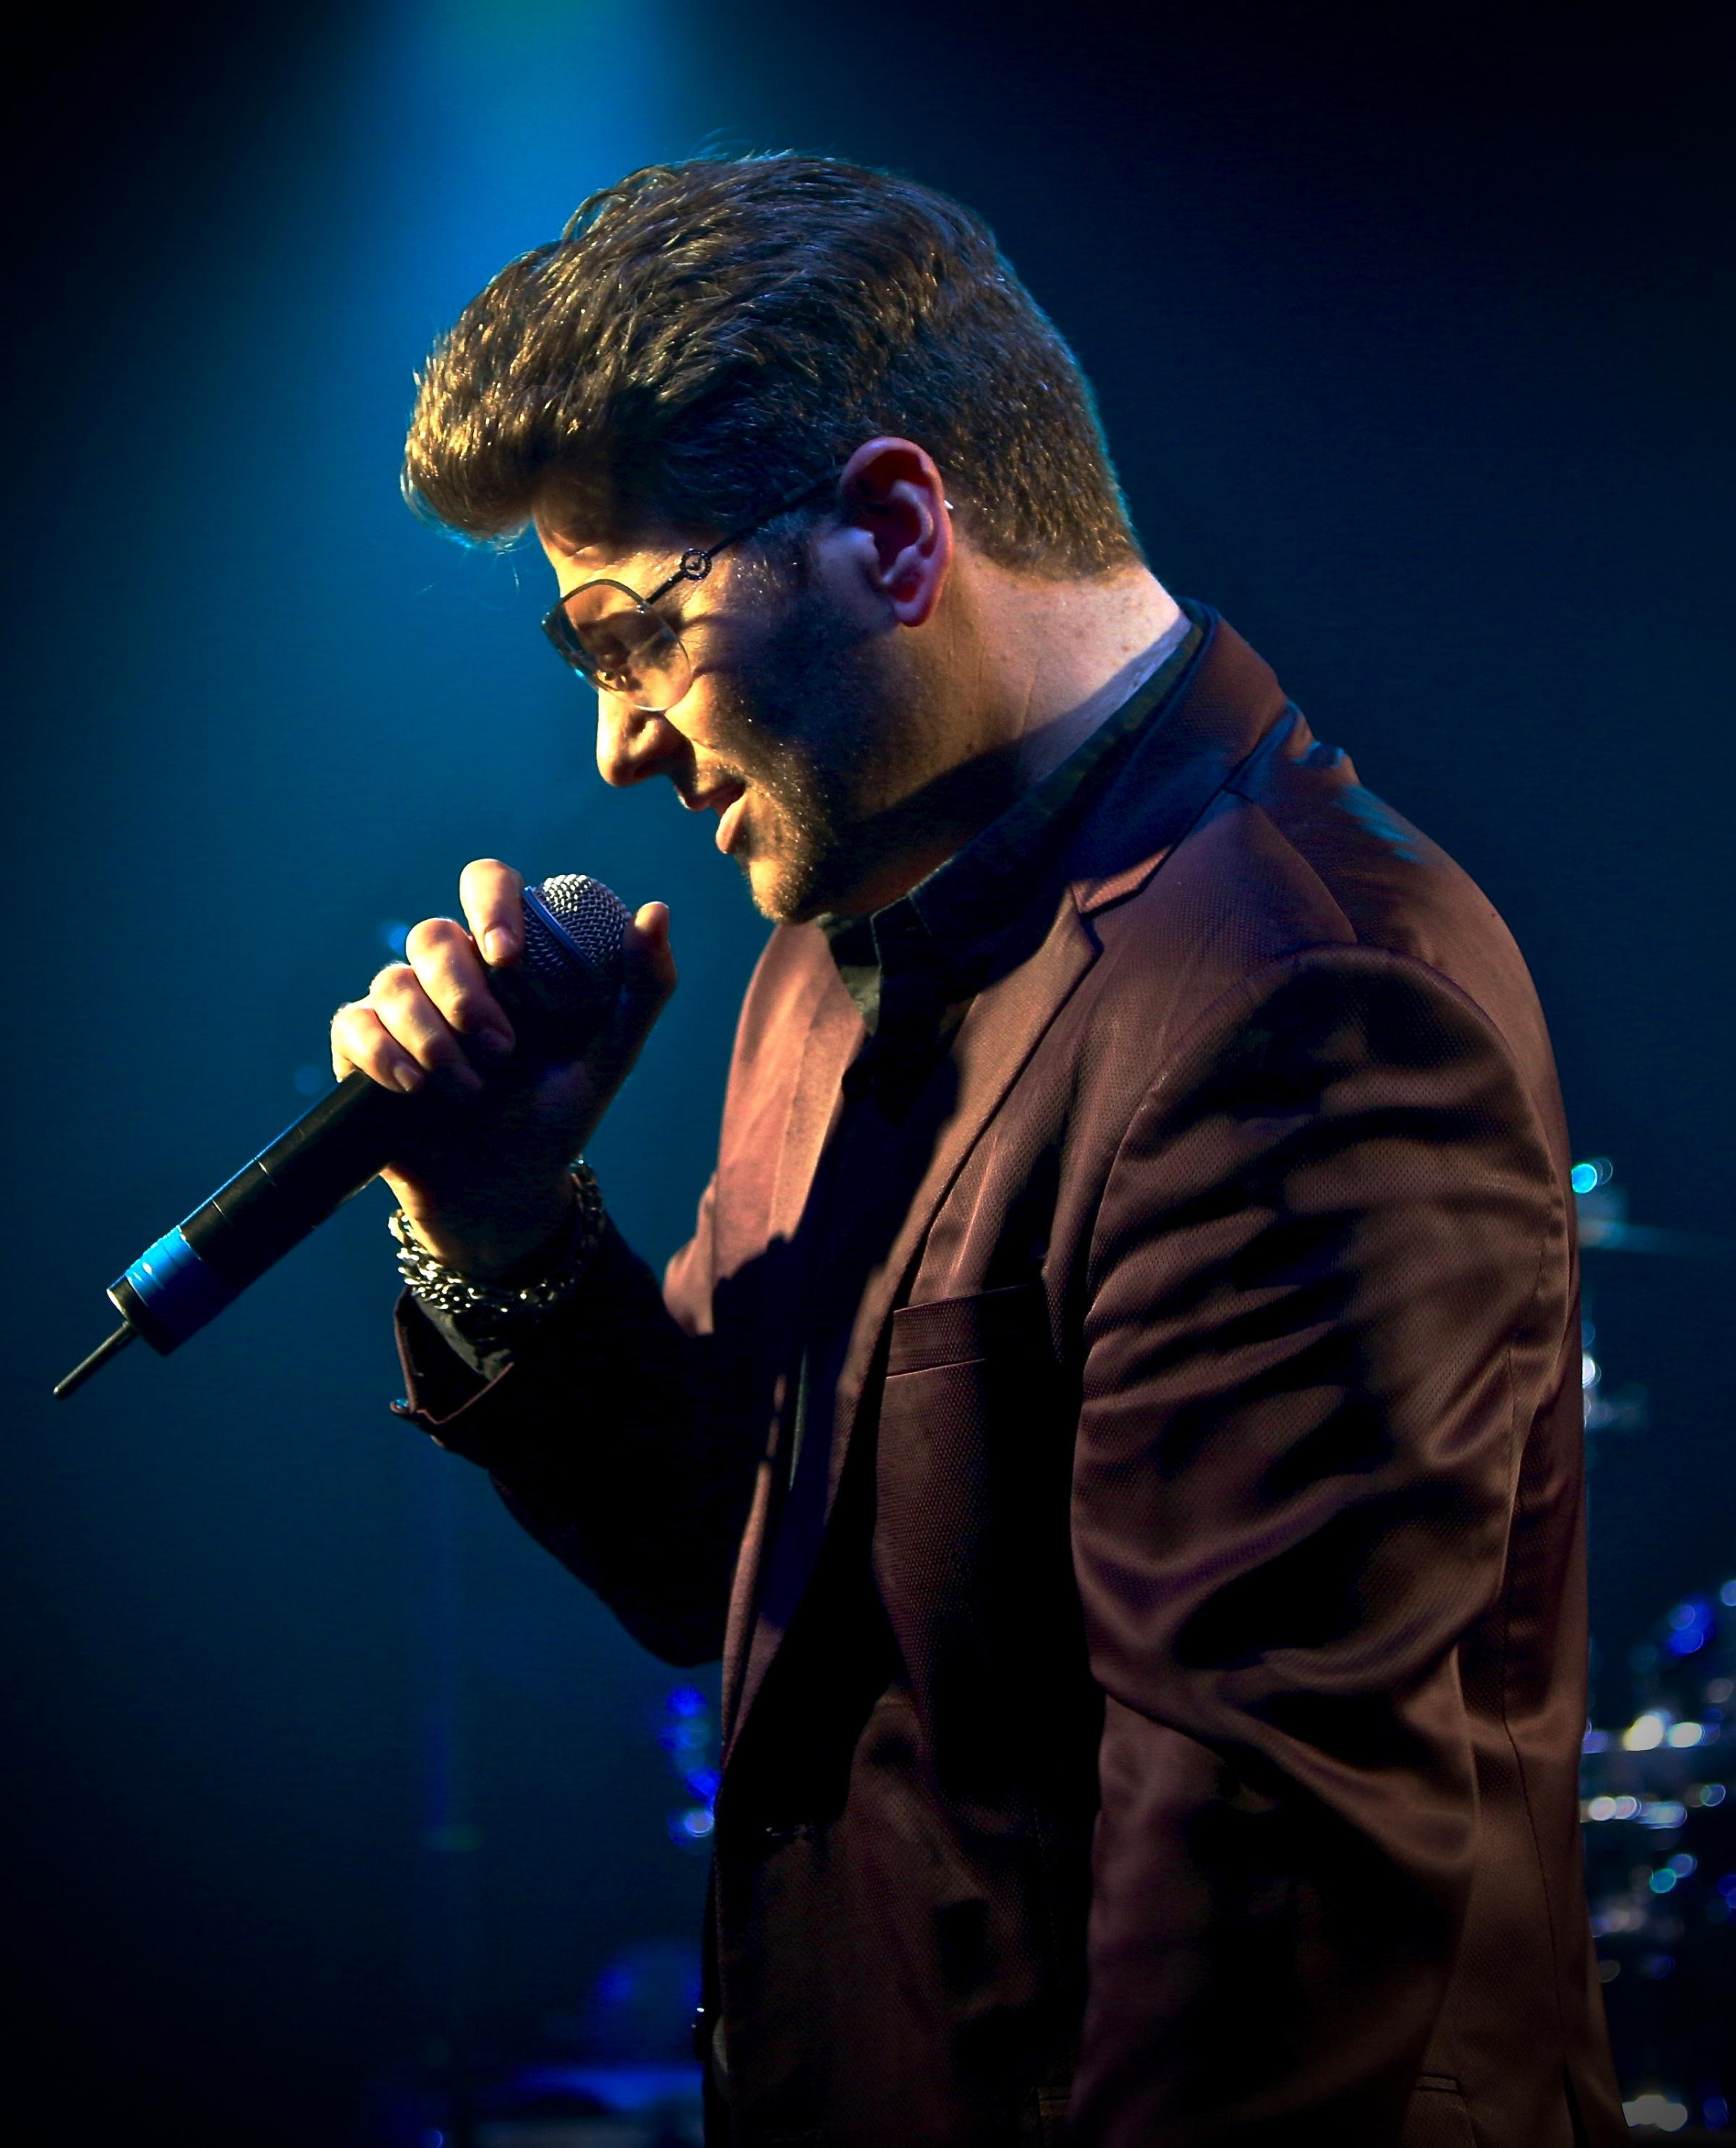 Wayne Dilks brings the works of George Michael to the City Hall on Friday